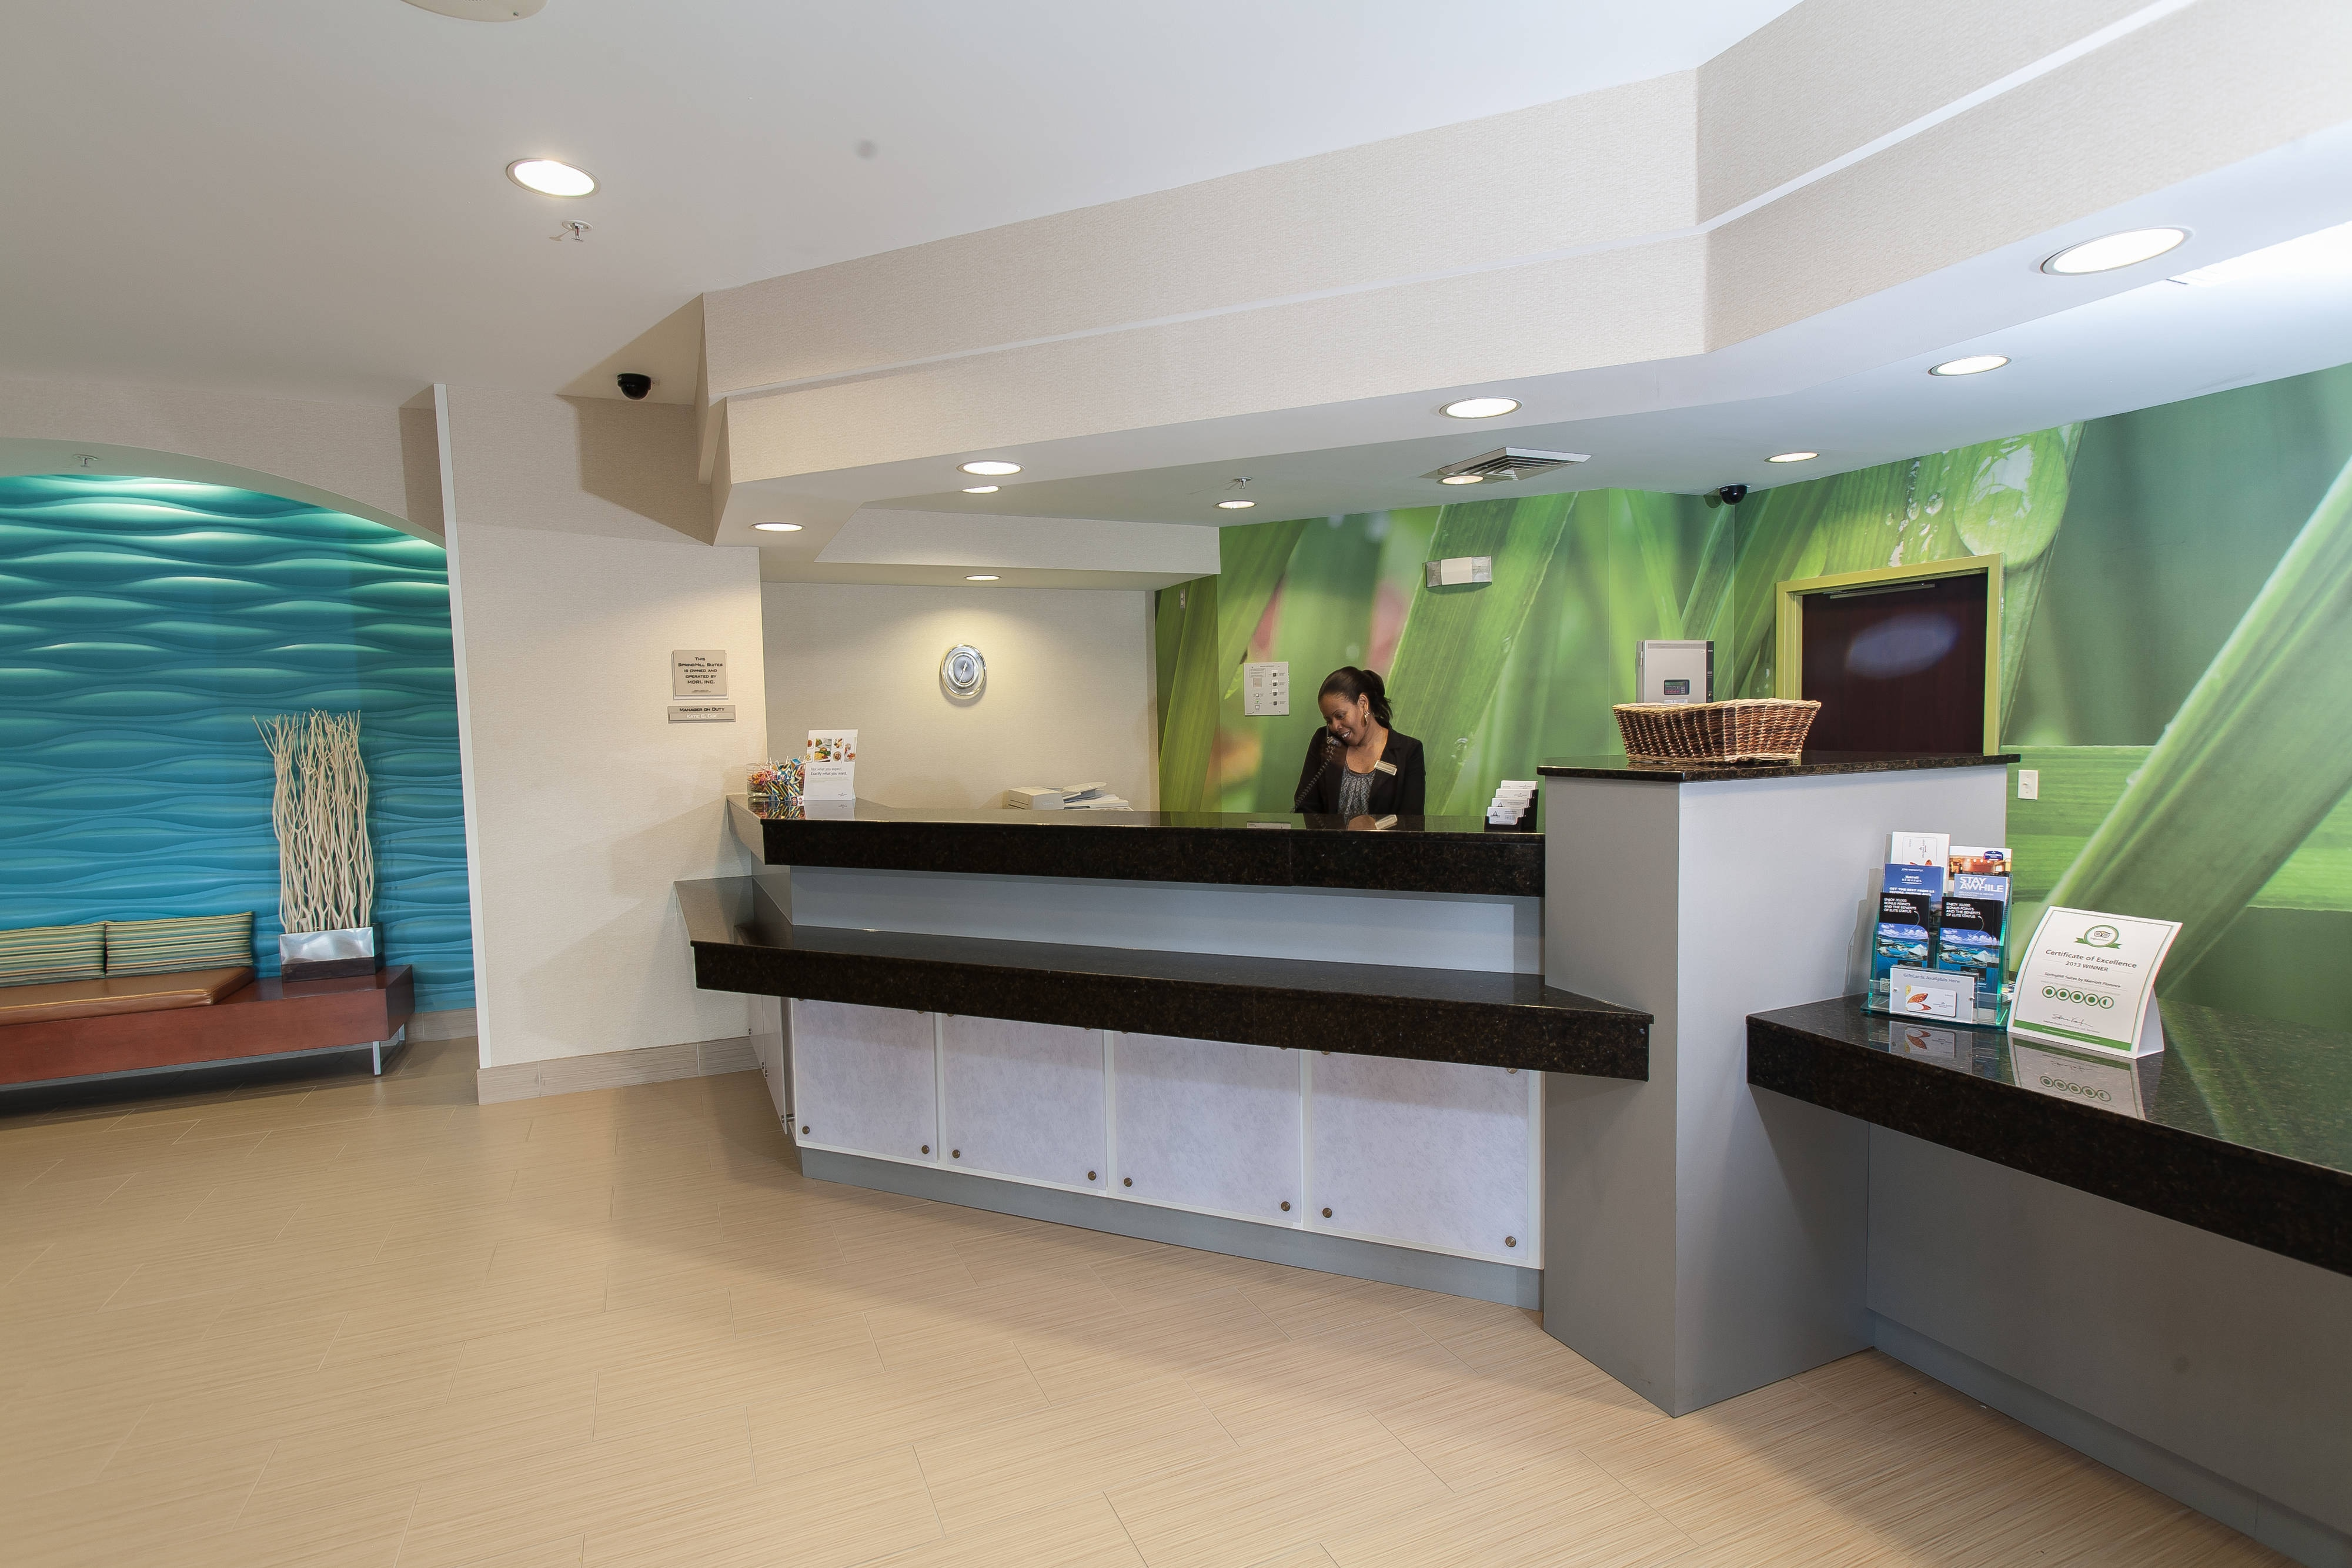 SpringHill Suites Marriott Florence Lobby Welcome